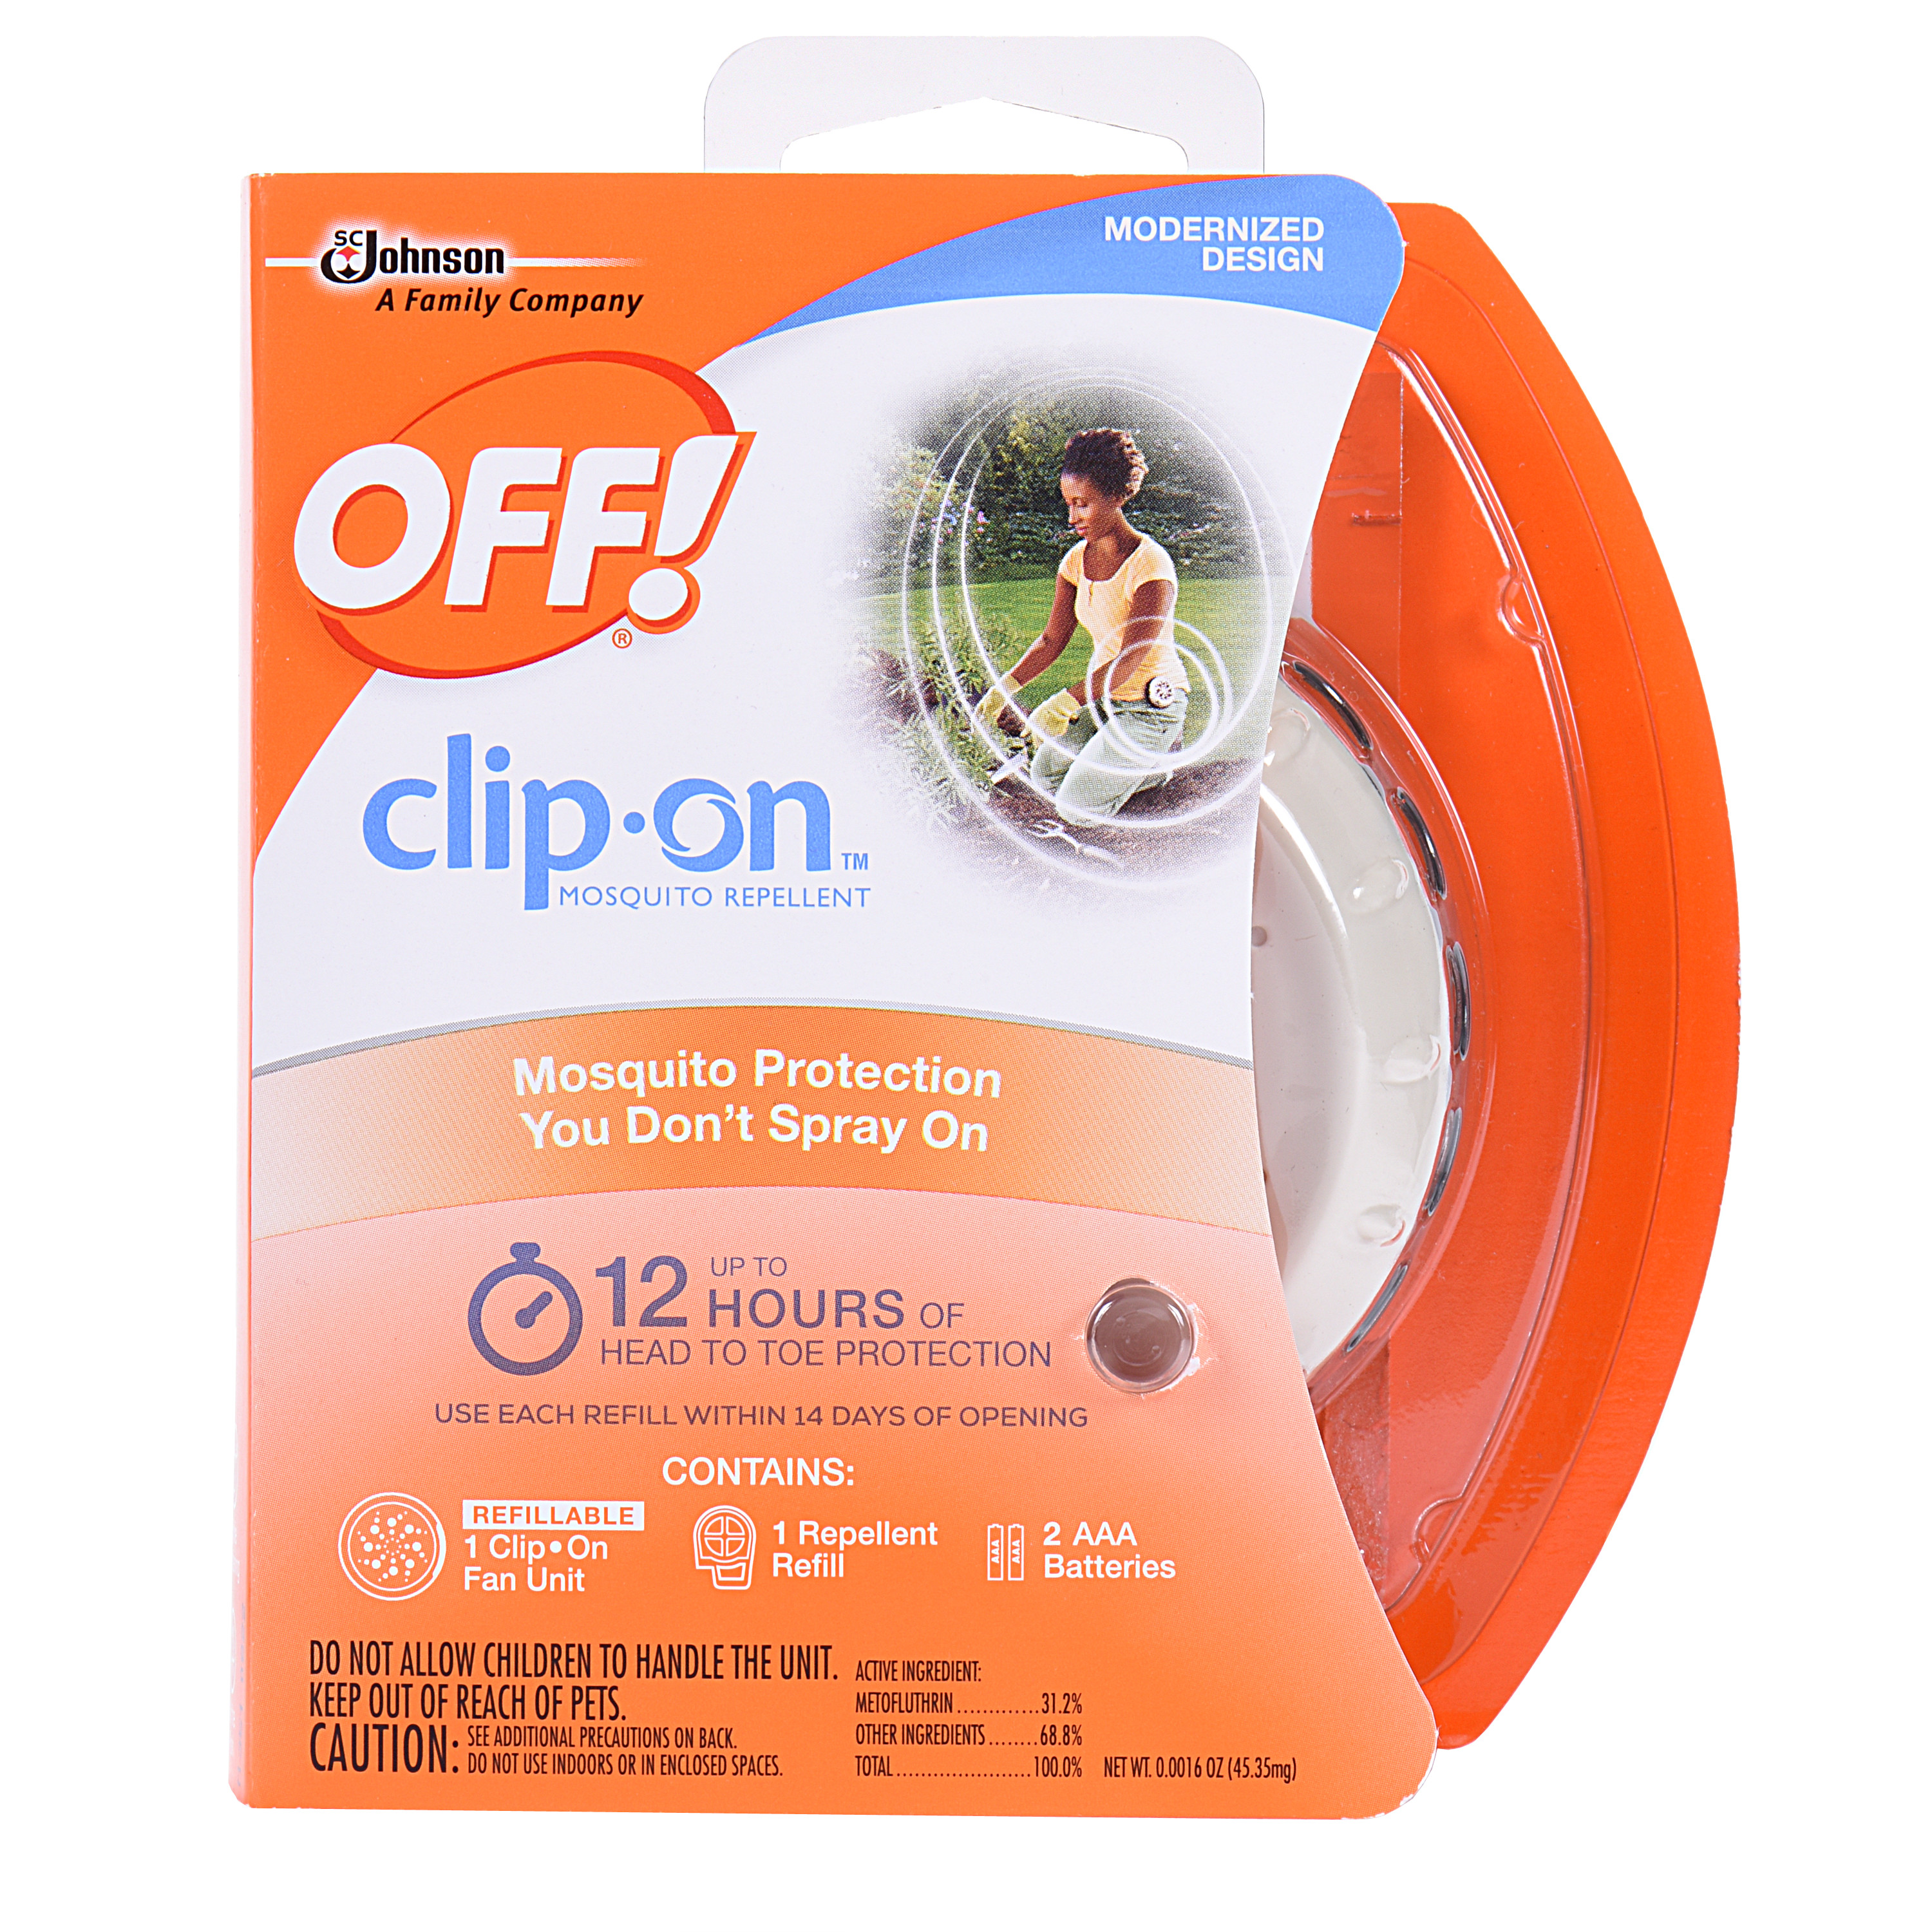 OFF! Clip-On Mosquito Repellent Starter Kit 0.0016 Ounces